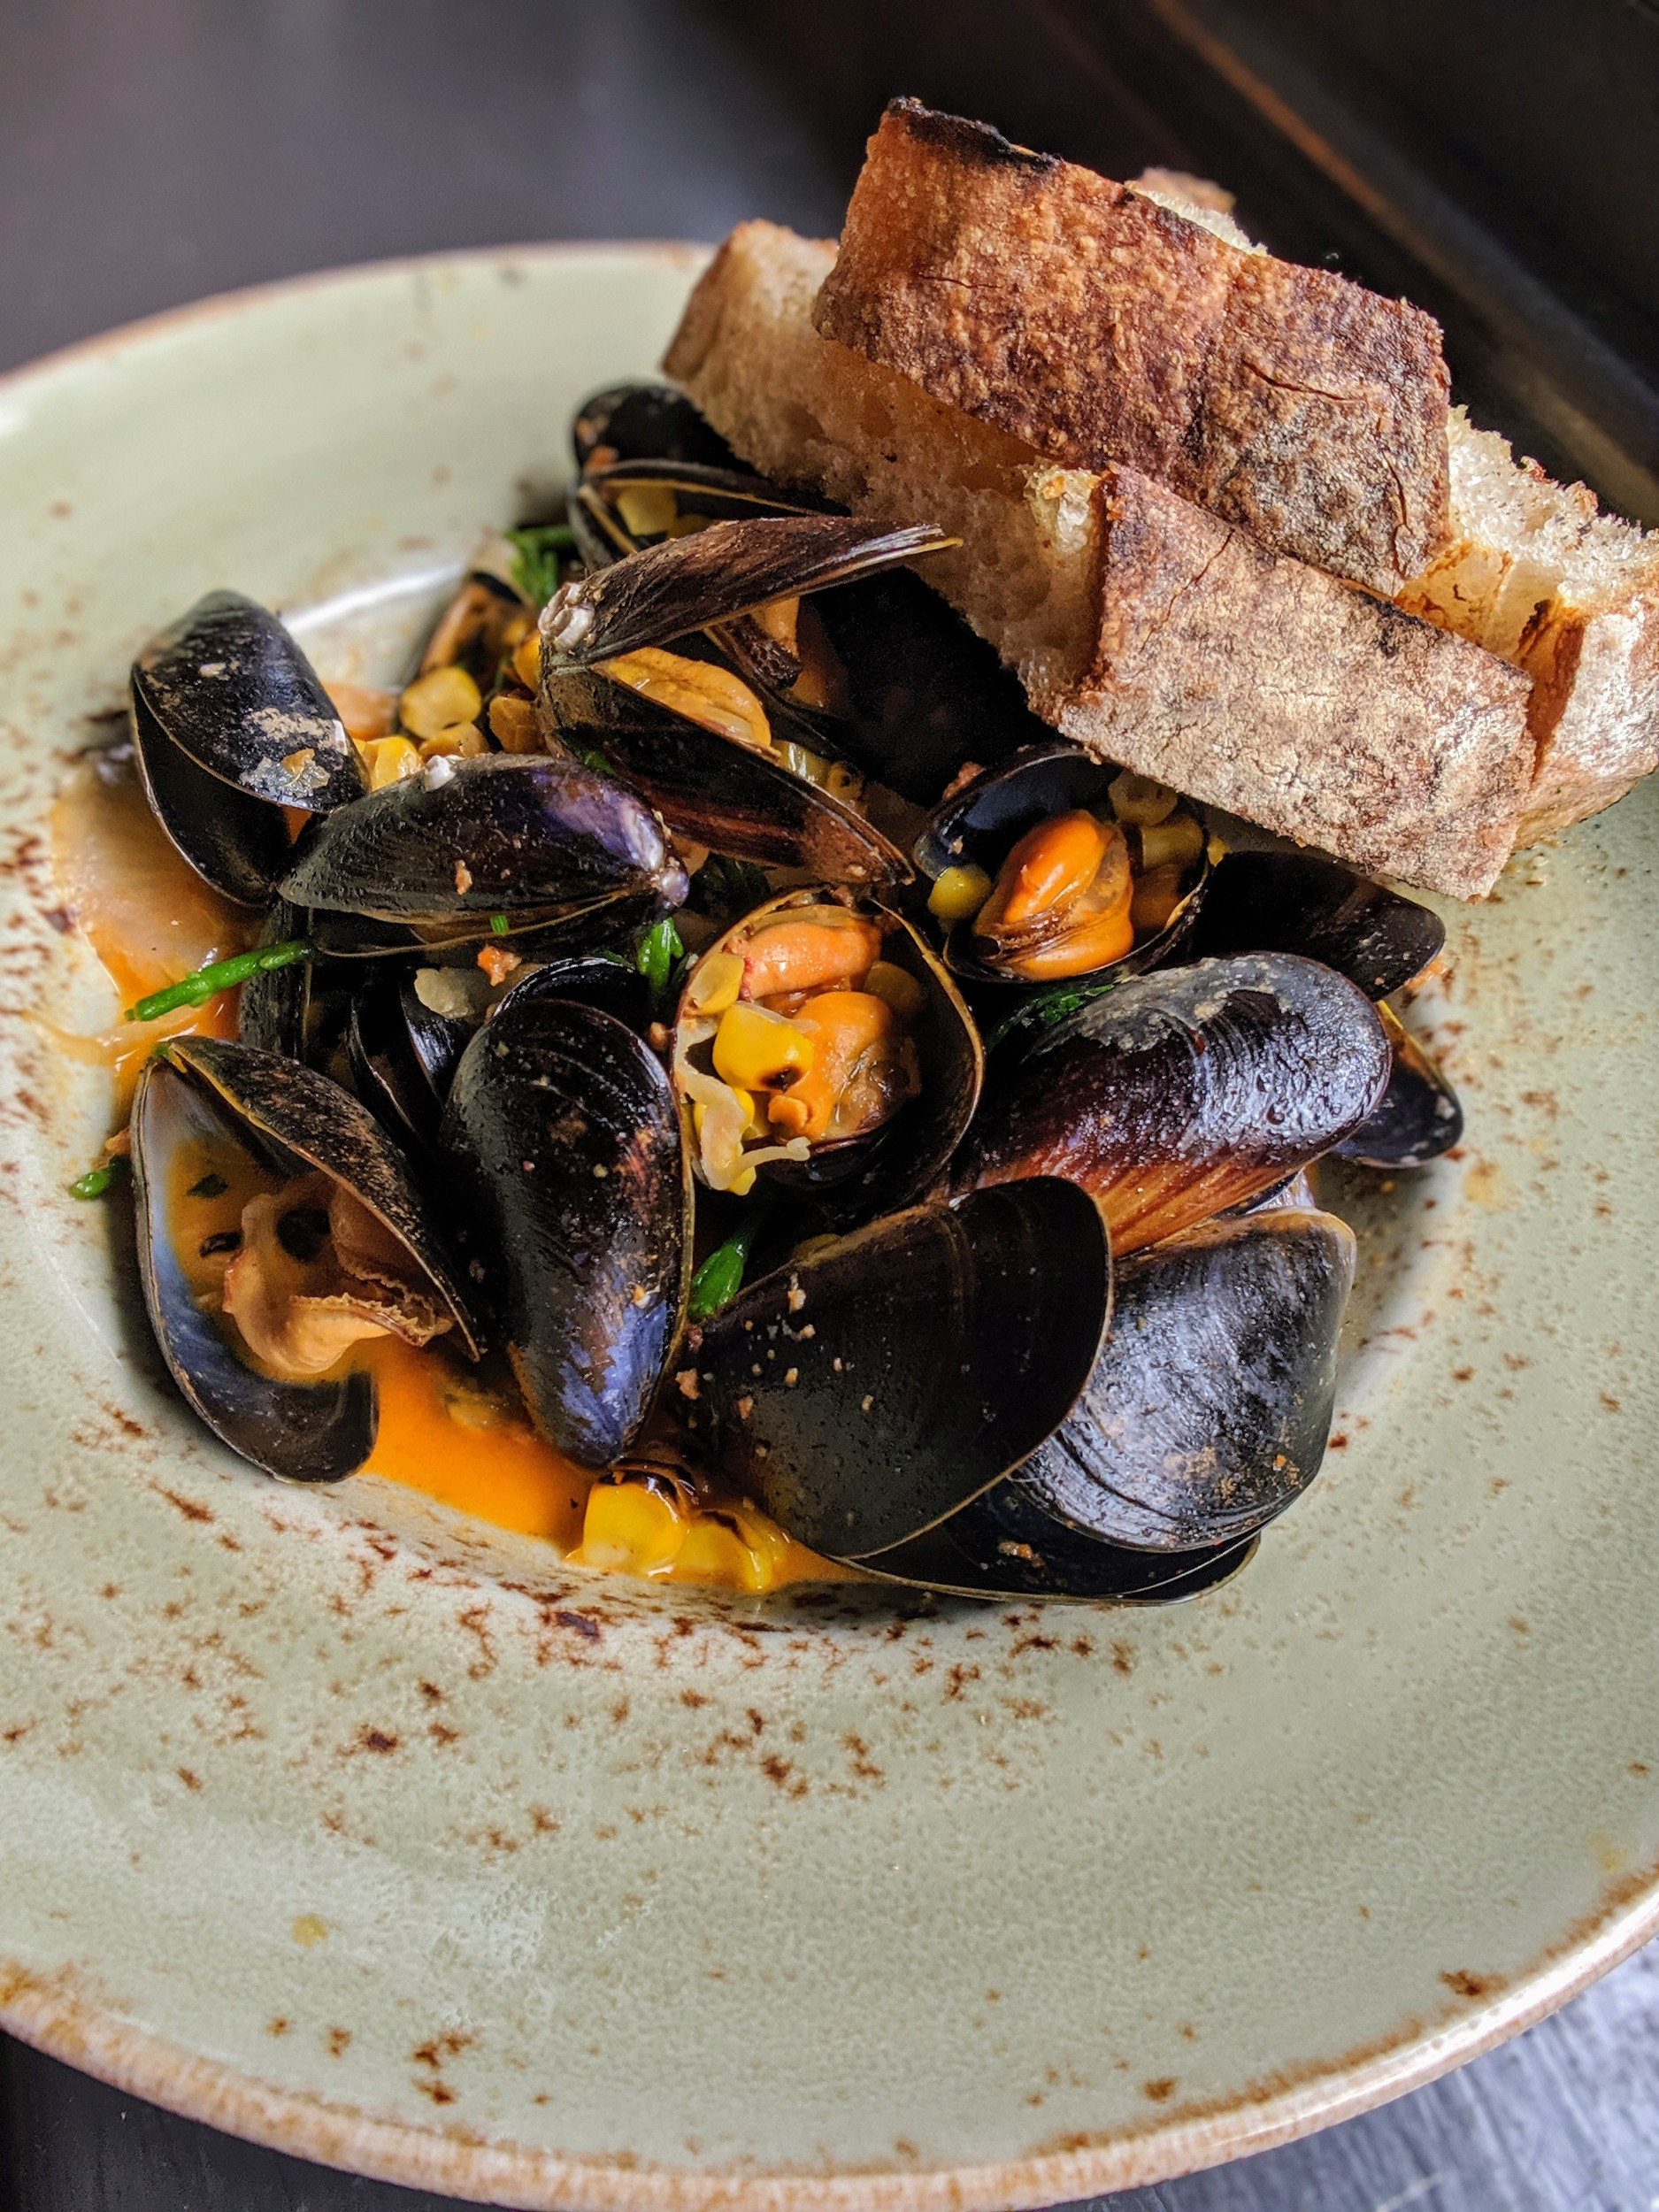 Irish mussels with nduja, sweet corn and sourdough.